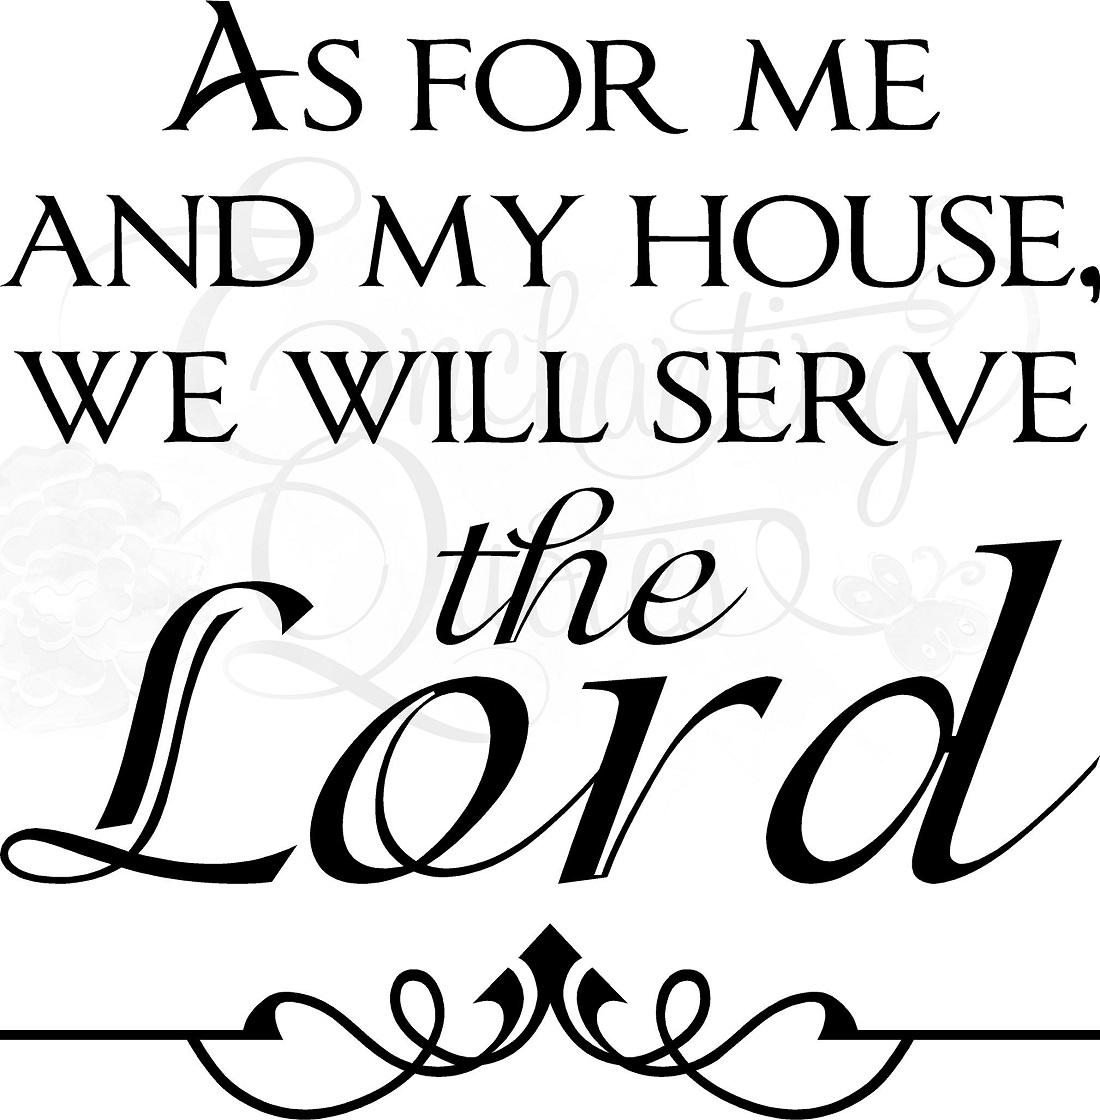 Religious Quotes | Vinyl Wall Sayings | As For Me And My House Within As For Me And My House Vinyl Wall Art (View 7 of 20)